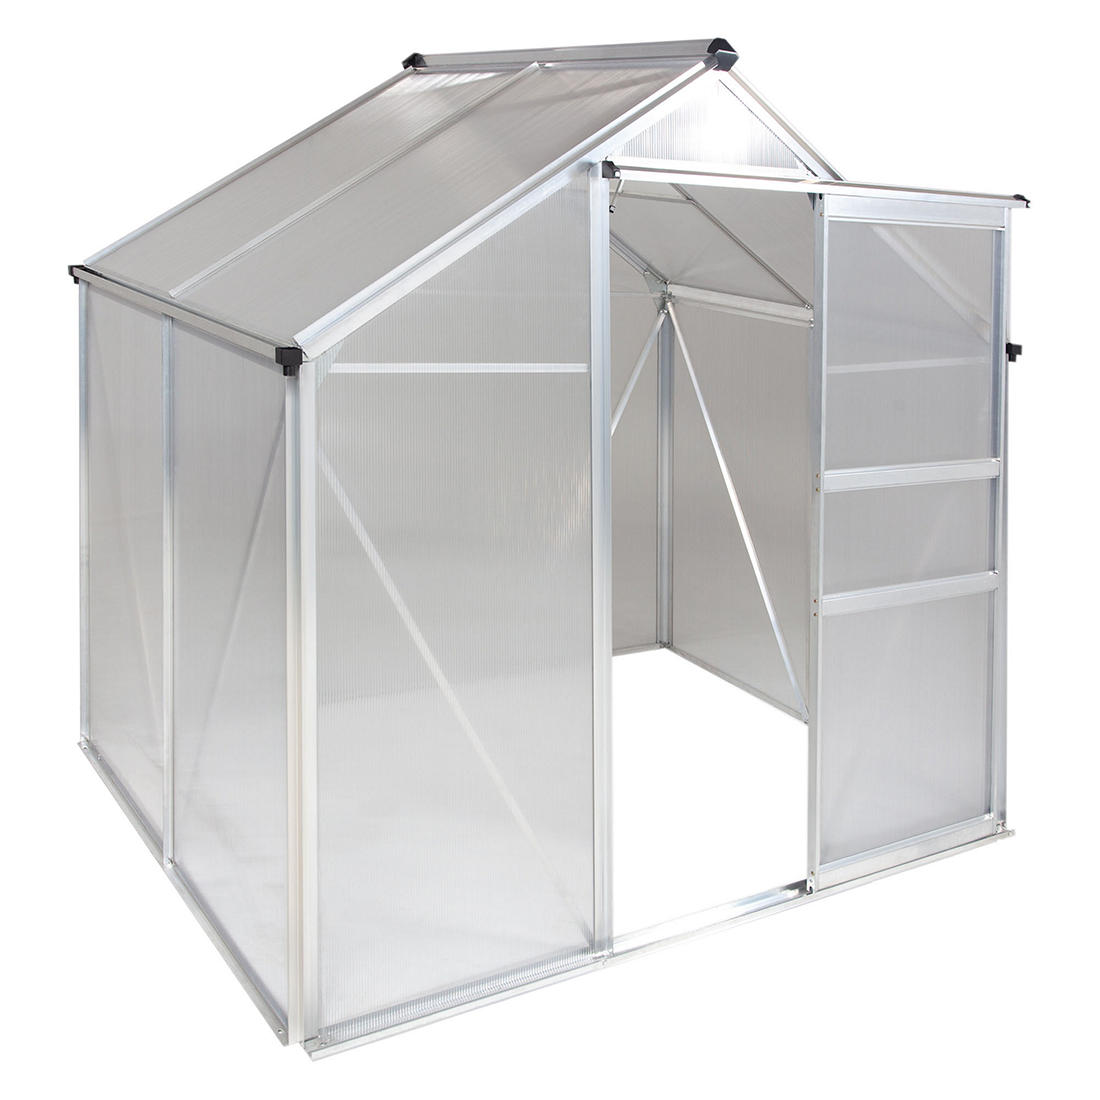 Osgrow 4 X 6 Walk In Greenhouse With Sliding Door Adjustable Roof Vent And Heavy Duty Aluminum Frame Bjs Wholesale Club